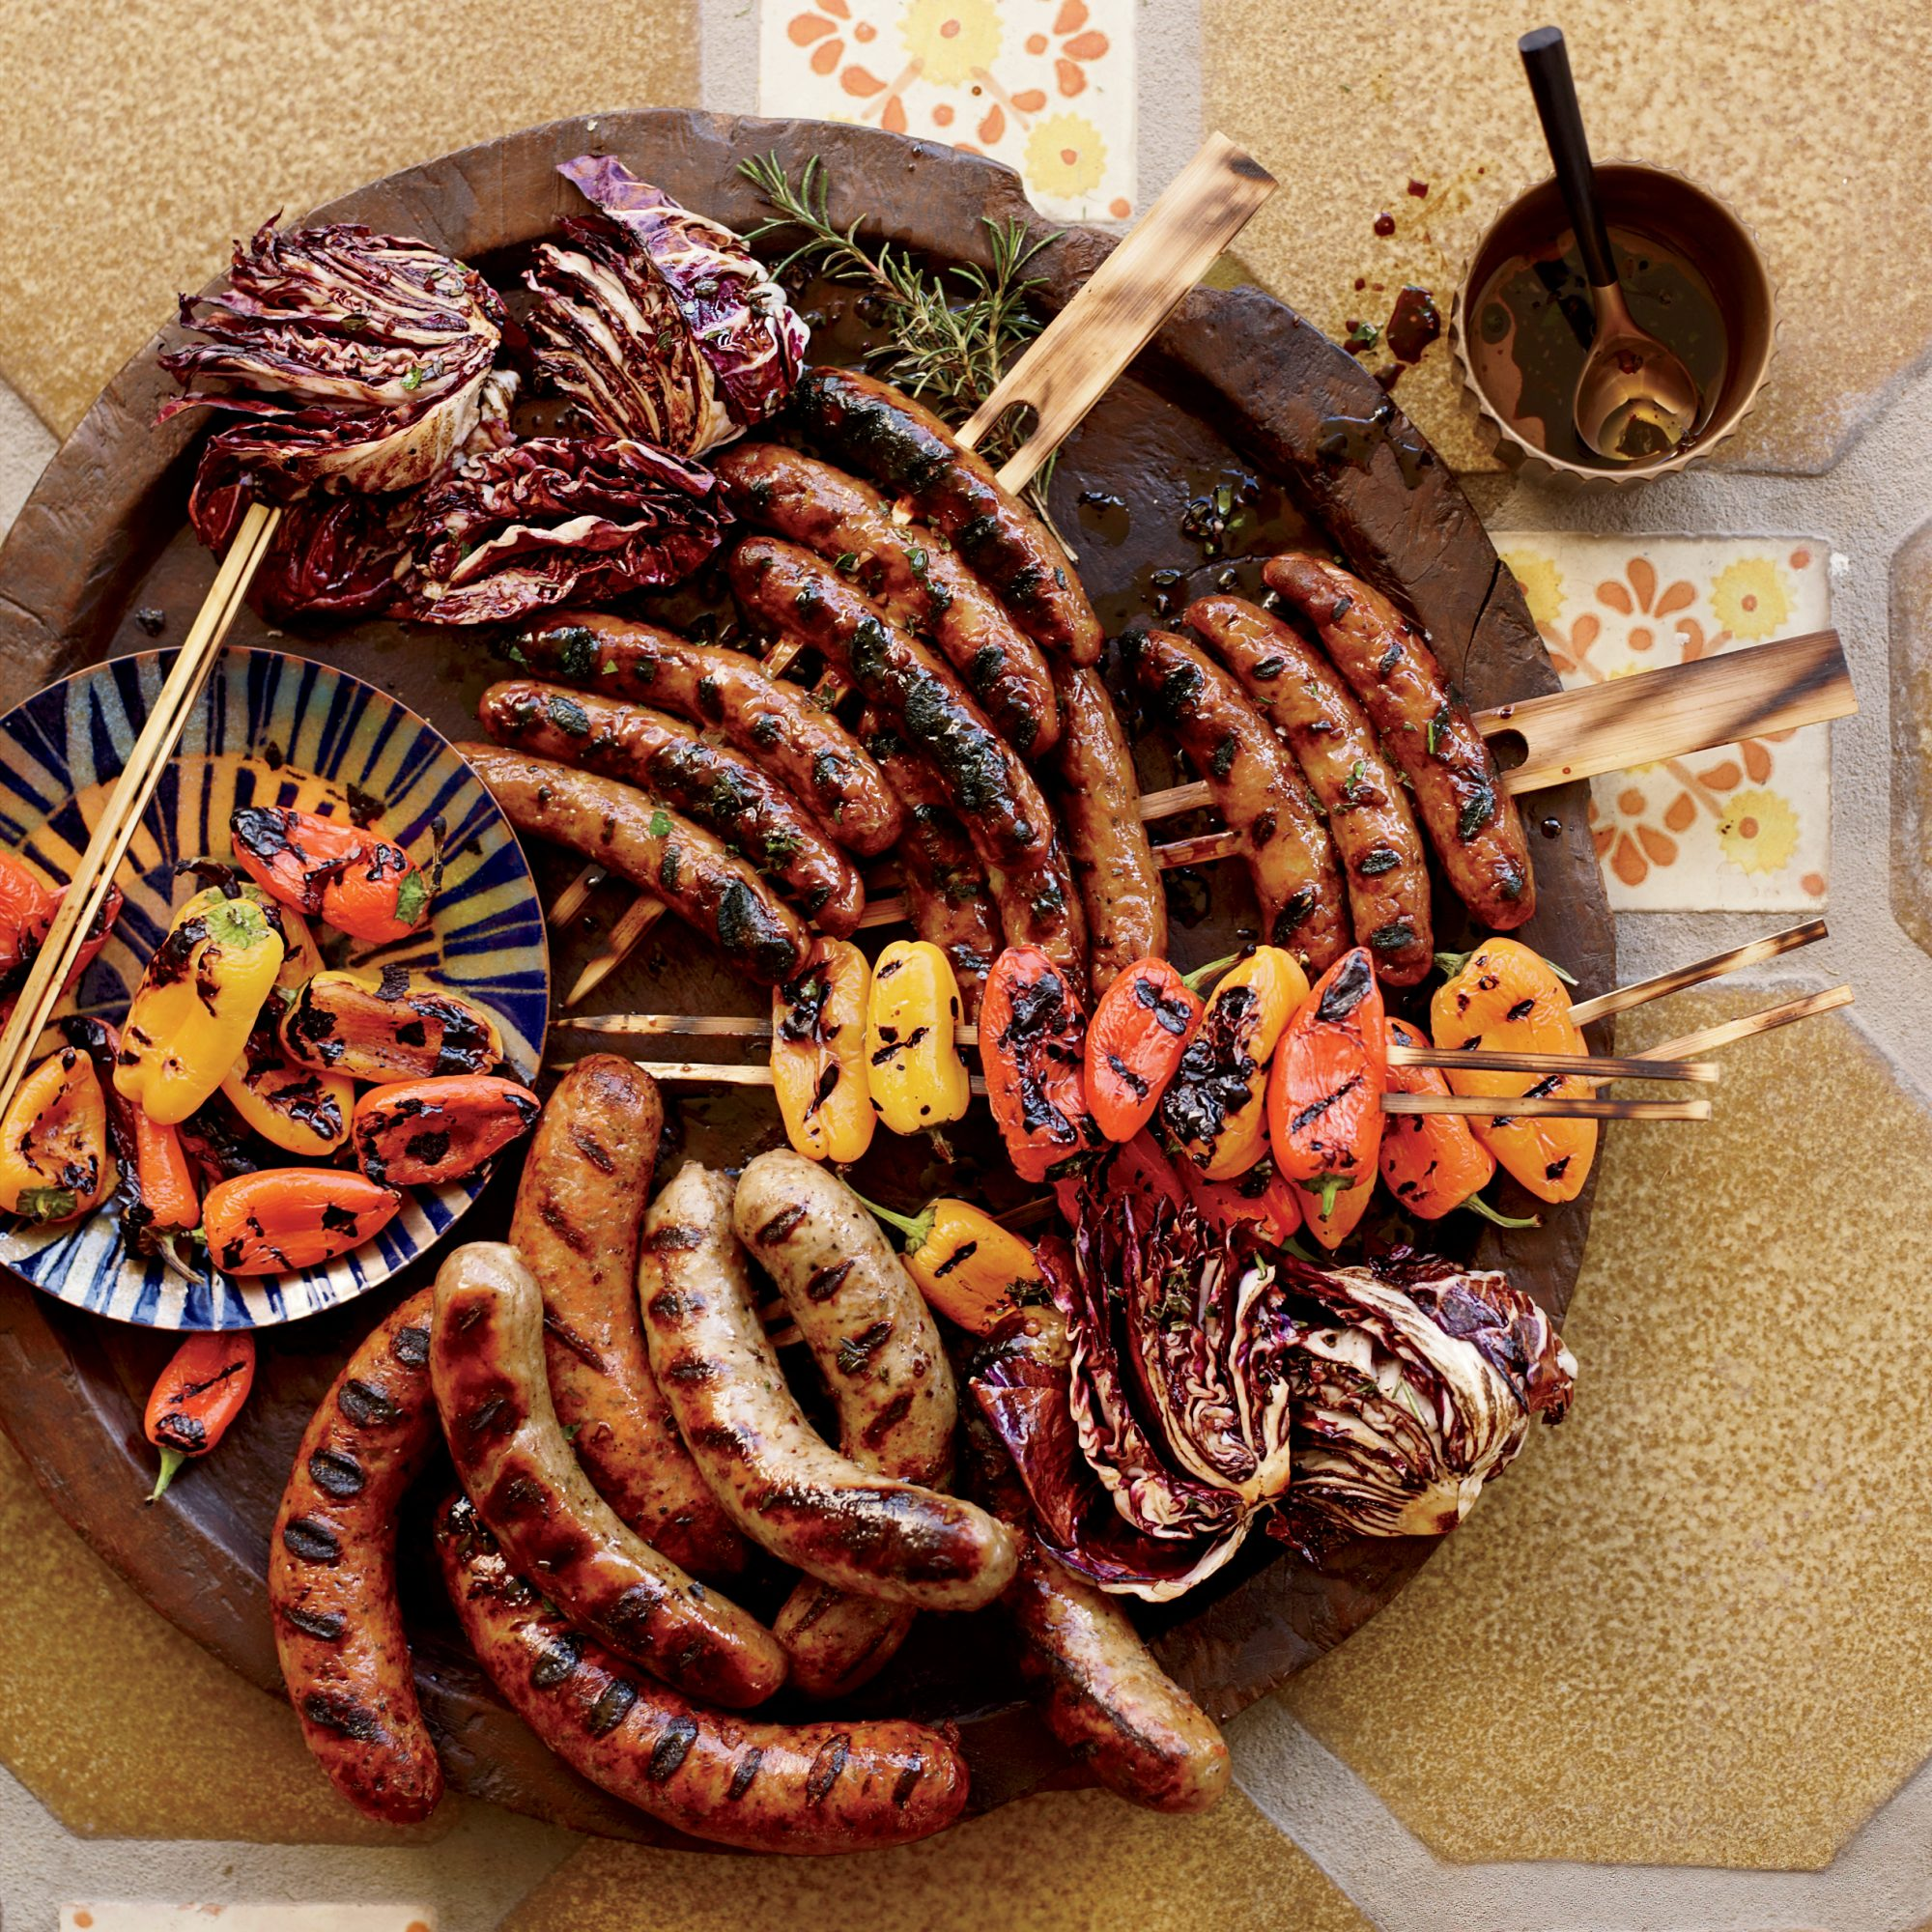 201006-r-sausage-mixed-grill.jpg